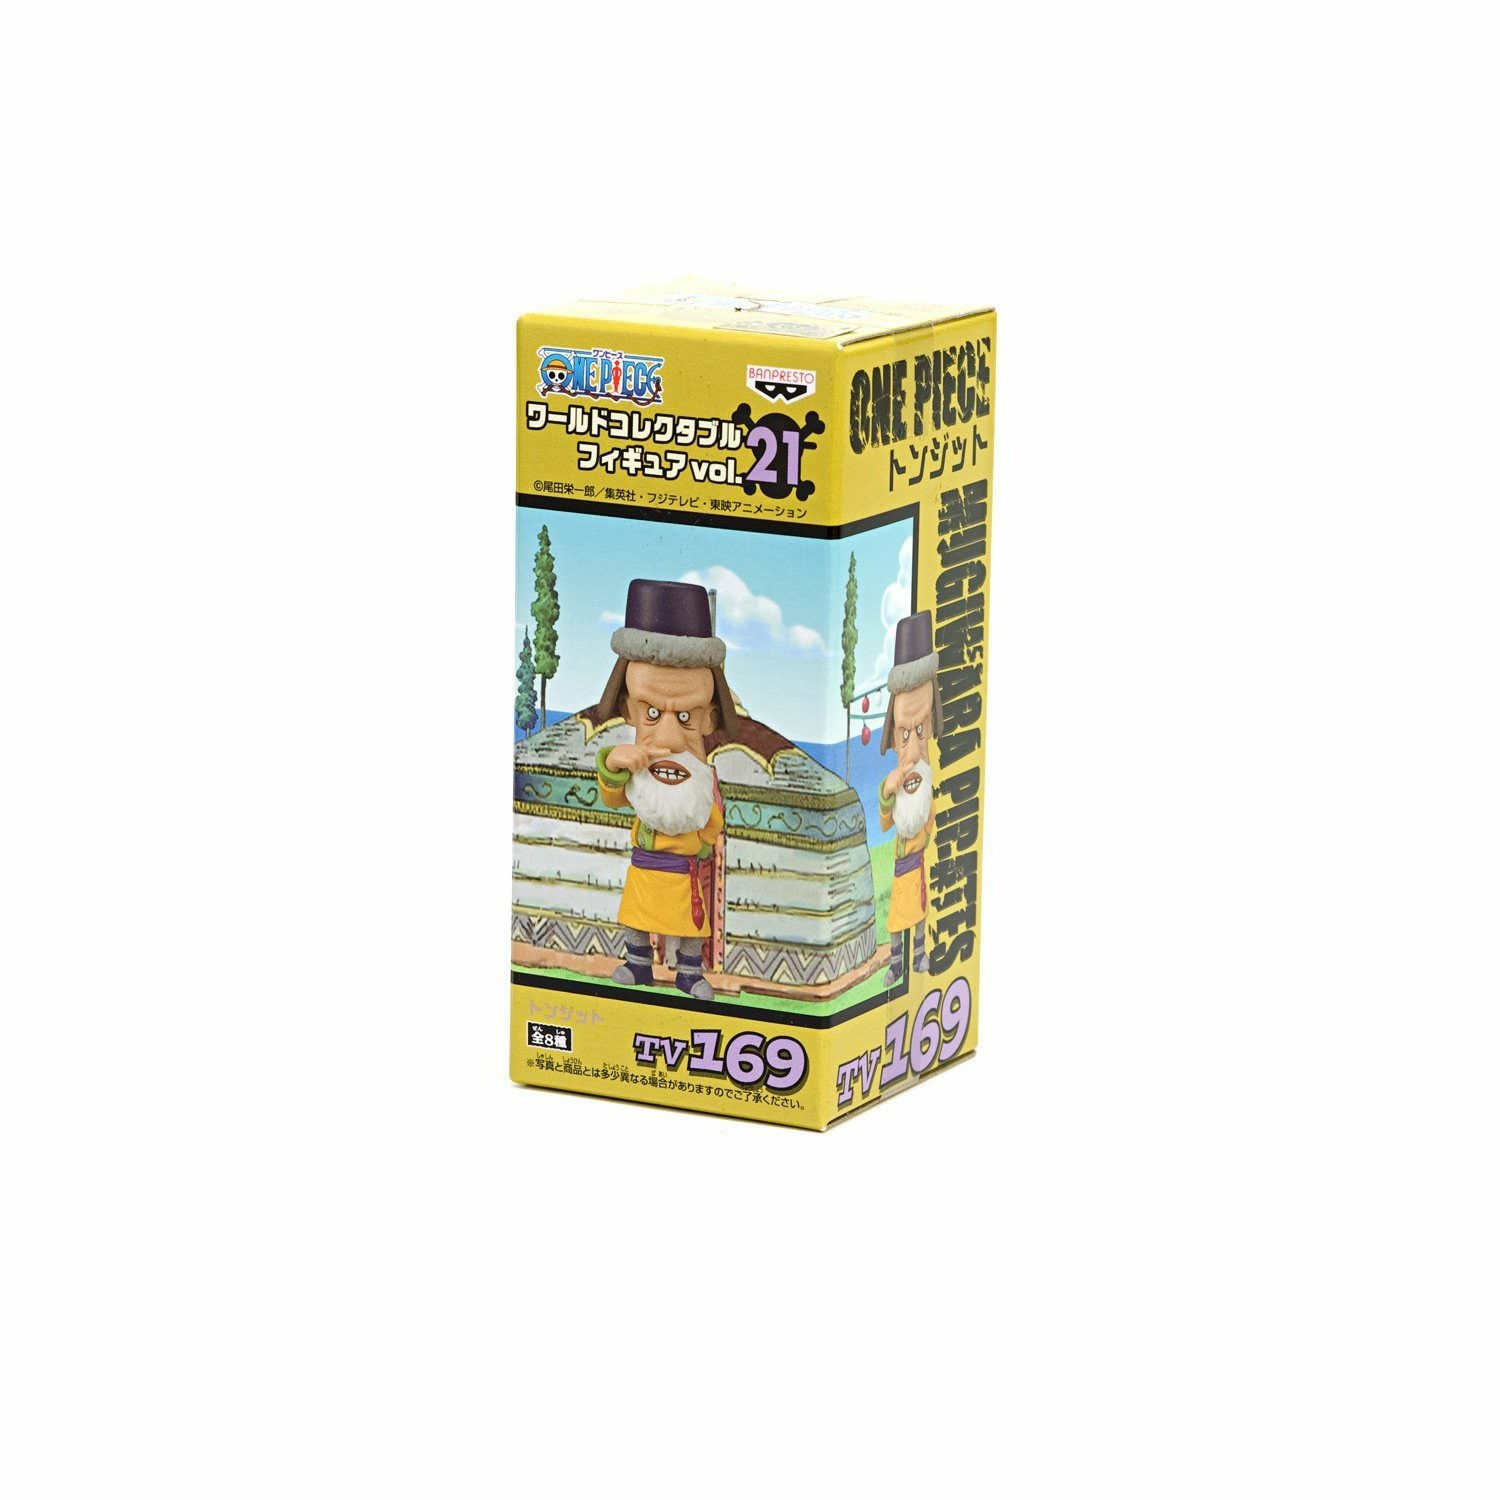 One Piece Collectable New World Figure Vol.21 - Tonjit (TV169)